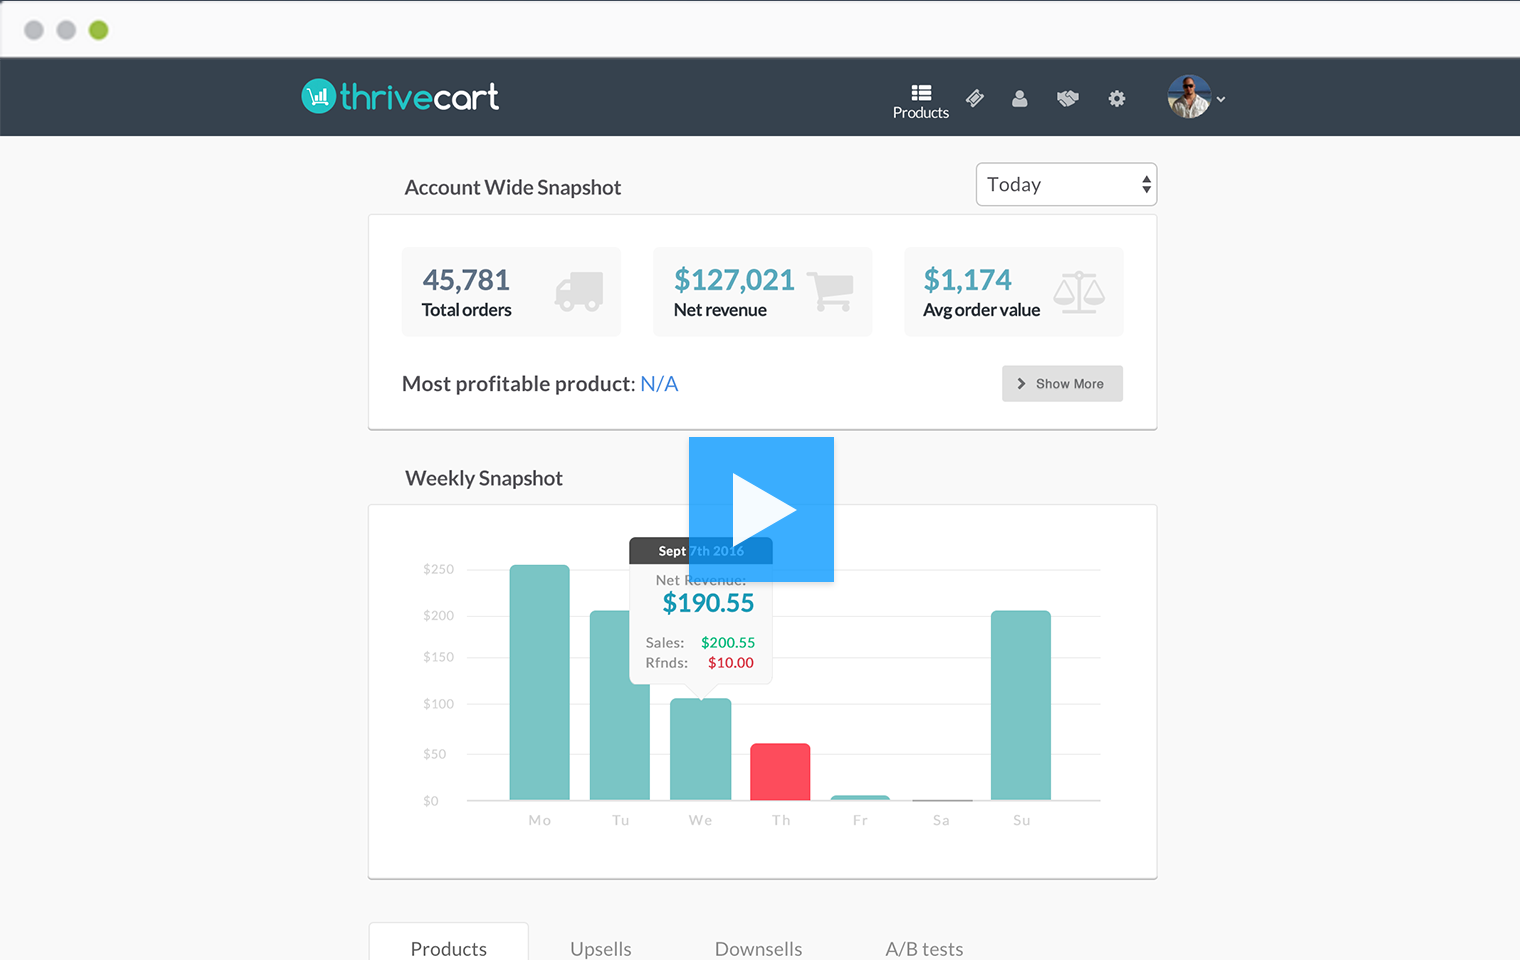 account wide snapshot dashboard